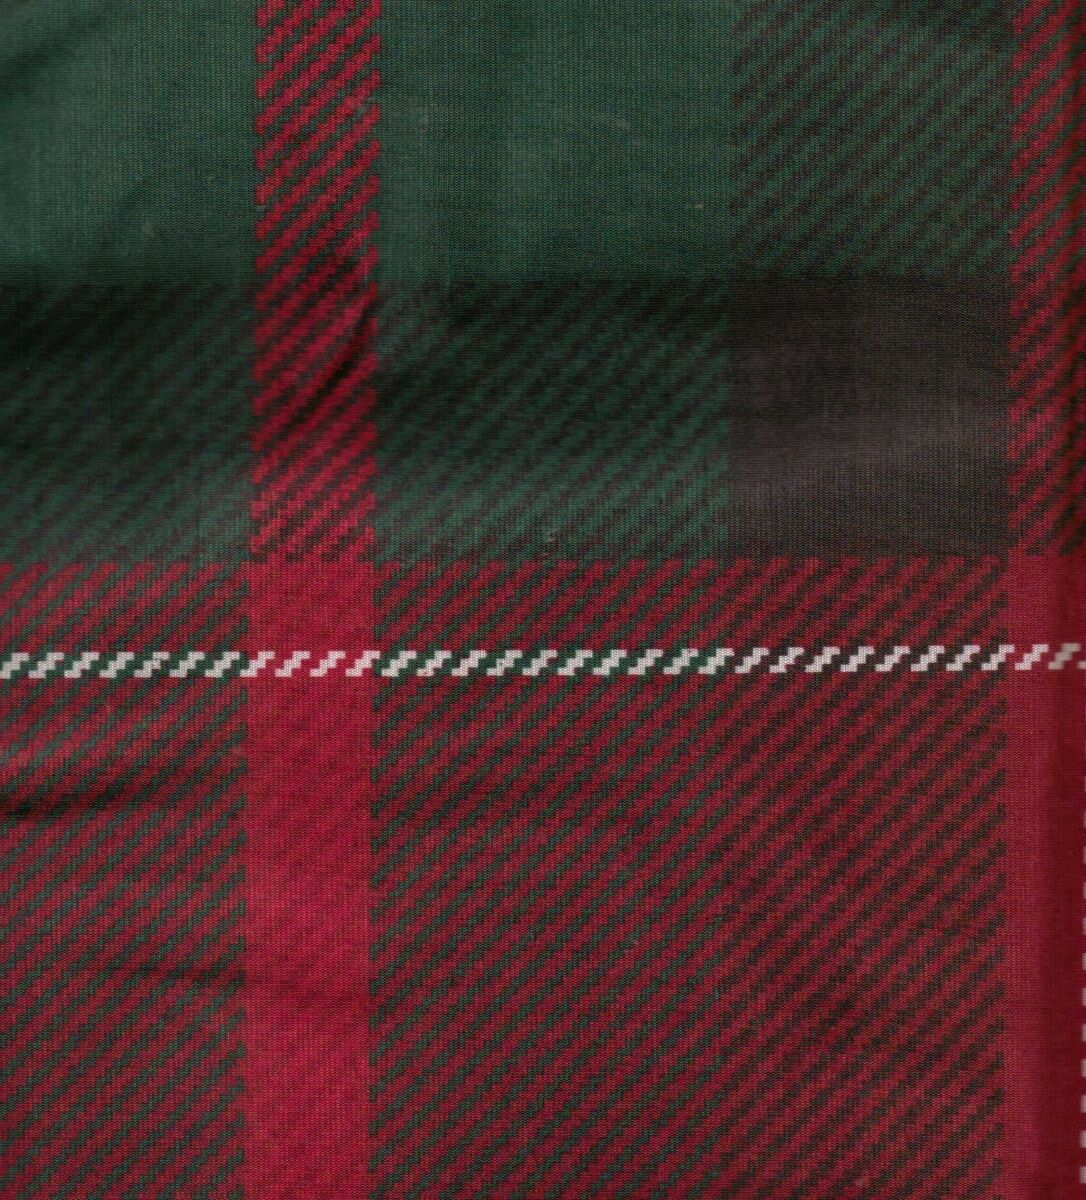 Curtains Ideas black and green shower curtain : Cabin Lodge Tartan Plaid Burgundy Red Black Fabric Shower Curtain NEW